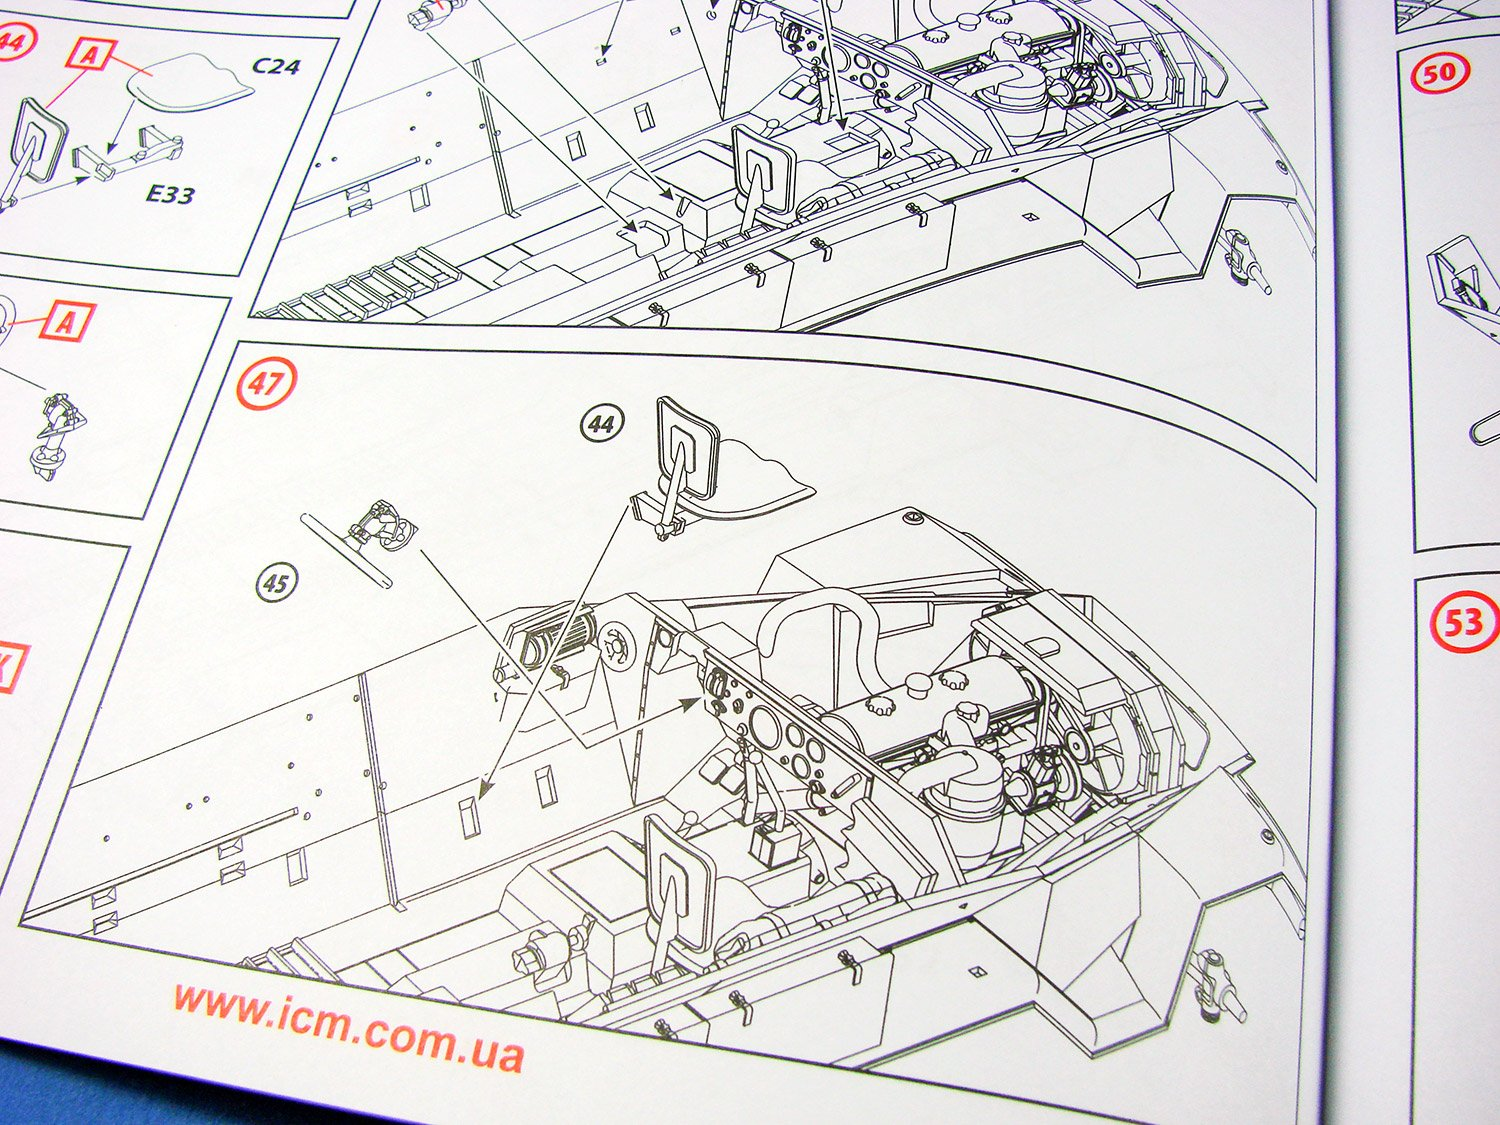 Icm 251 Wiring Diagram Trusted Diagrams Circuit Board 1 35 Sd Kfz Ausf A Armour Afv Reviews Large Scale Modeller Ladder